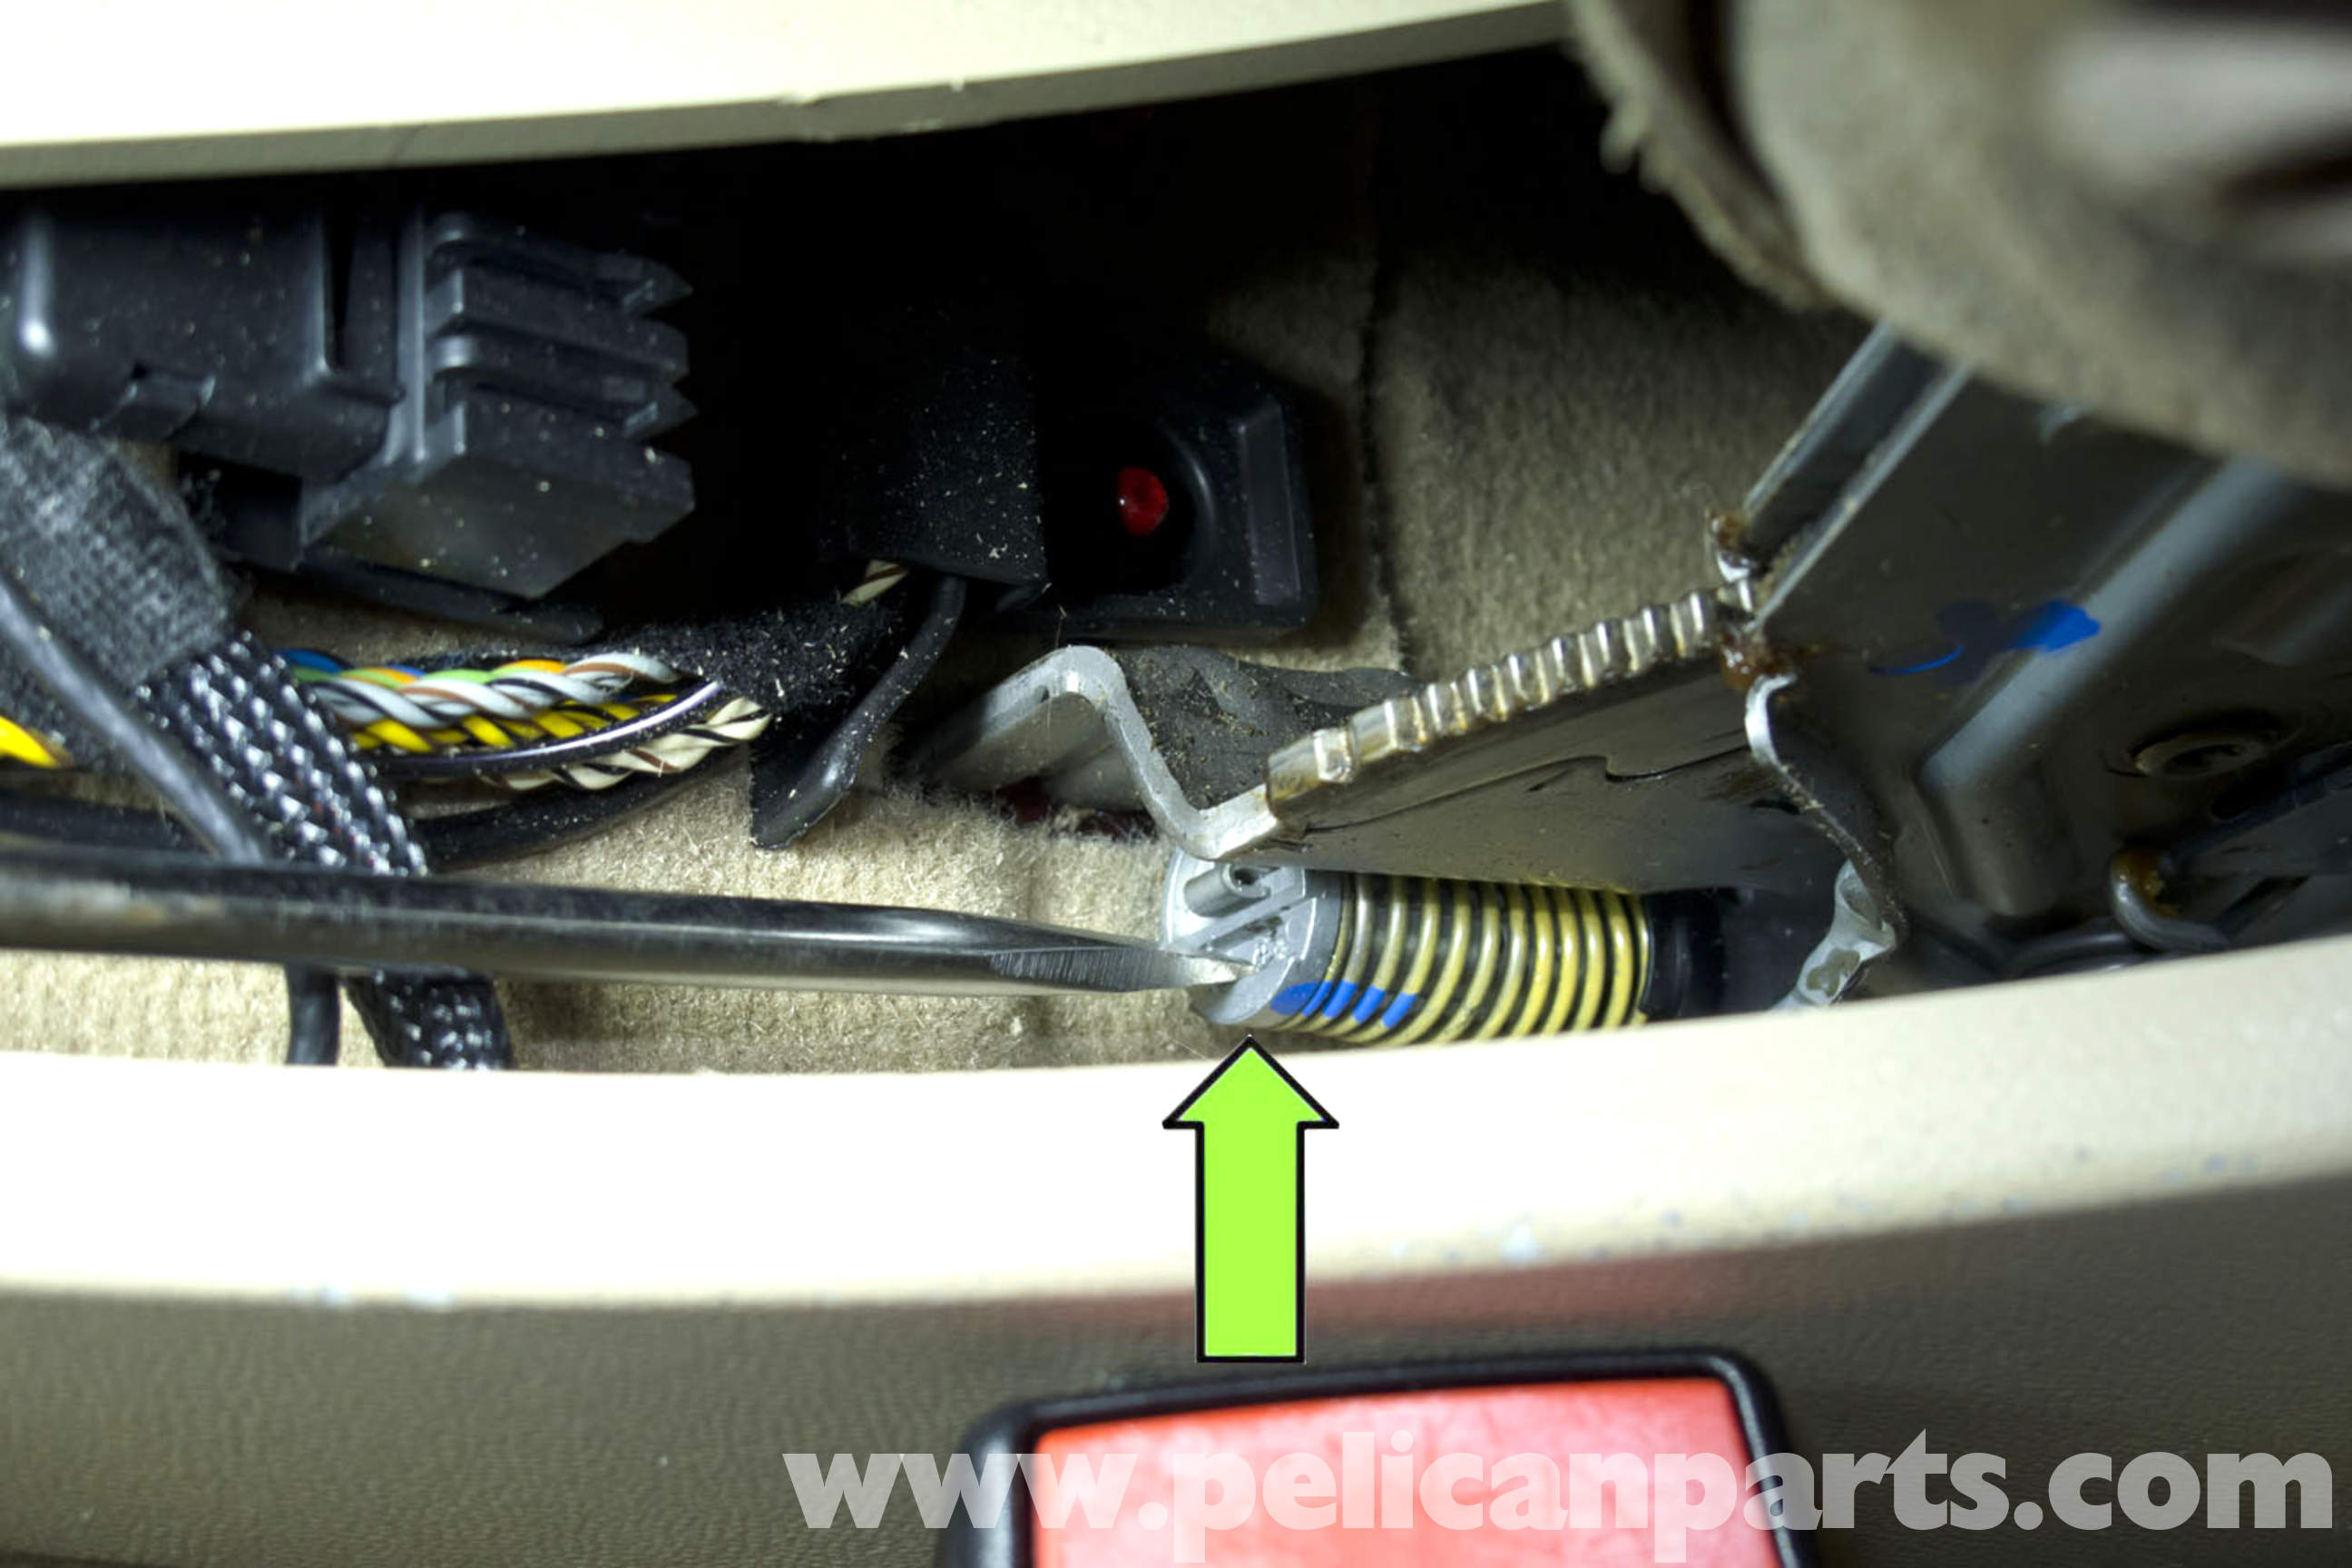 Bmw E90 Parking Brake Shoes Replacement E91 E92 E93 Pelican Pedal Boat Wiring Diagram Large Image Extra